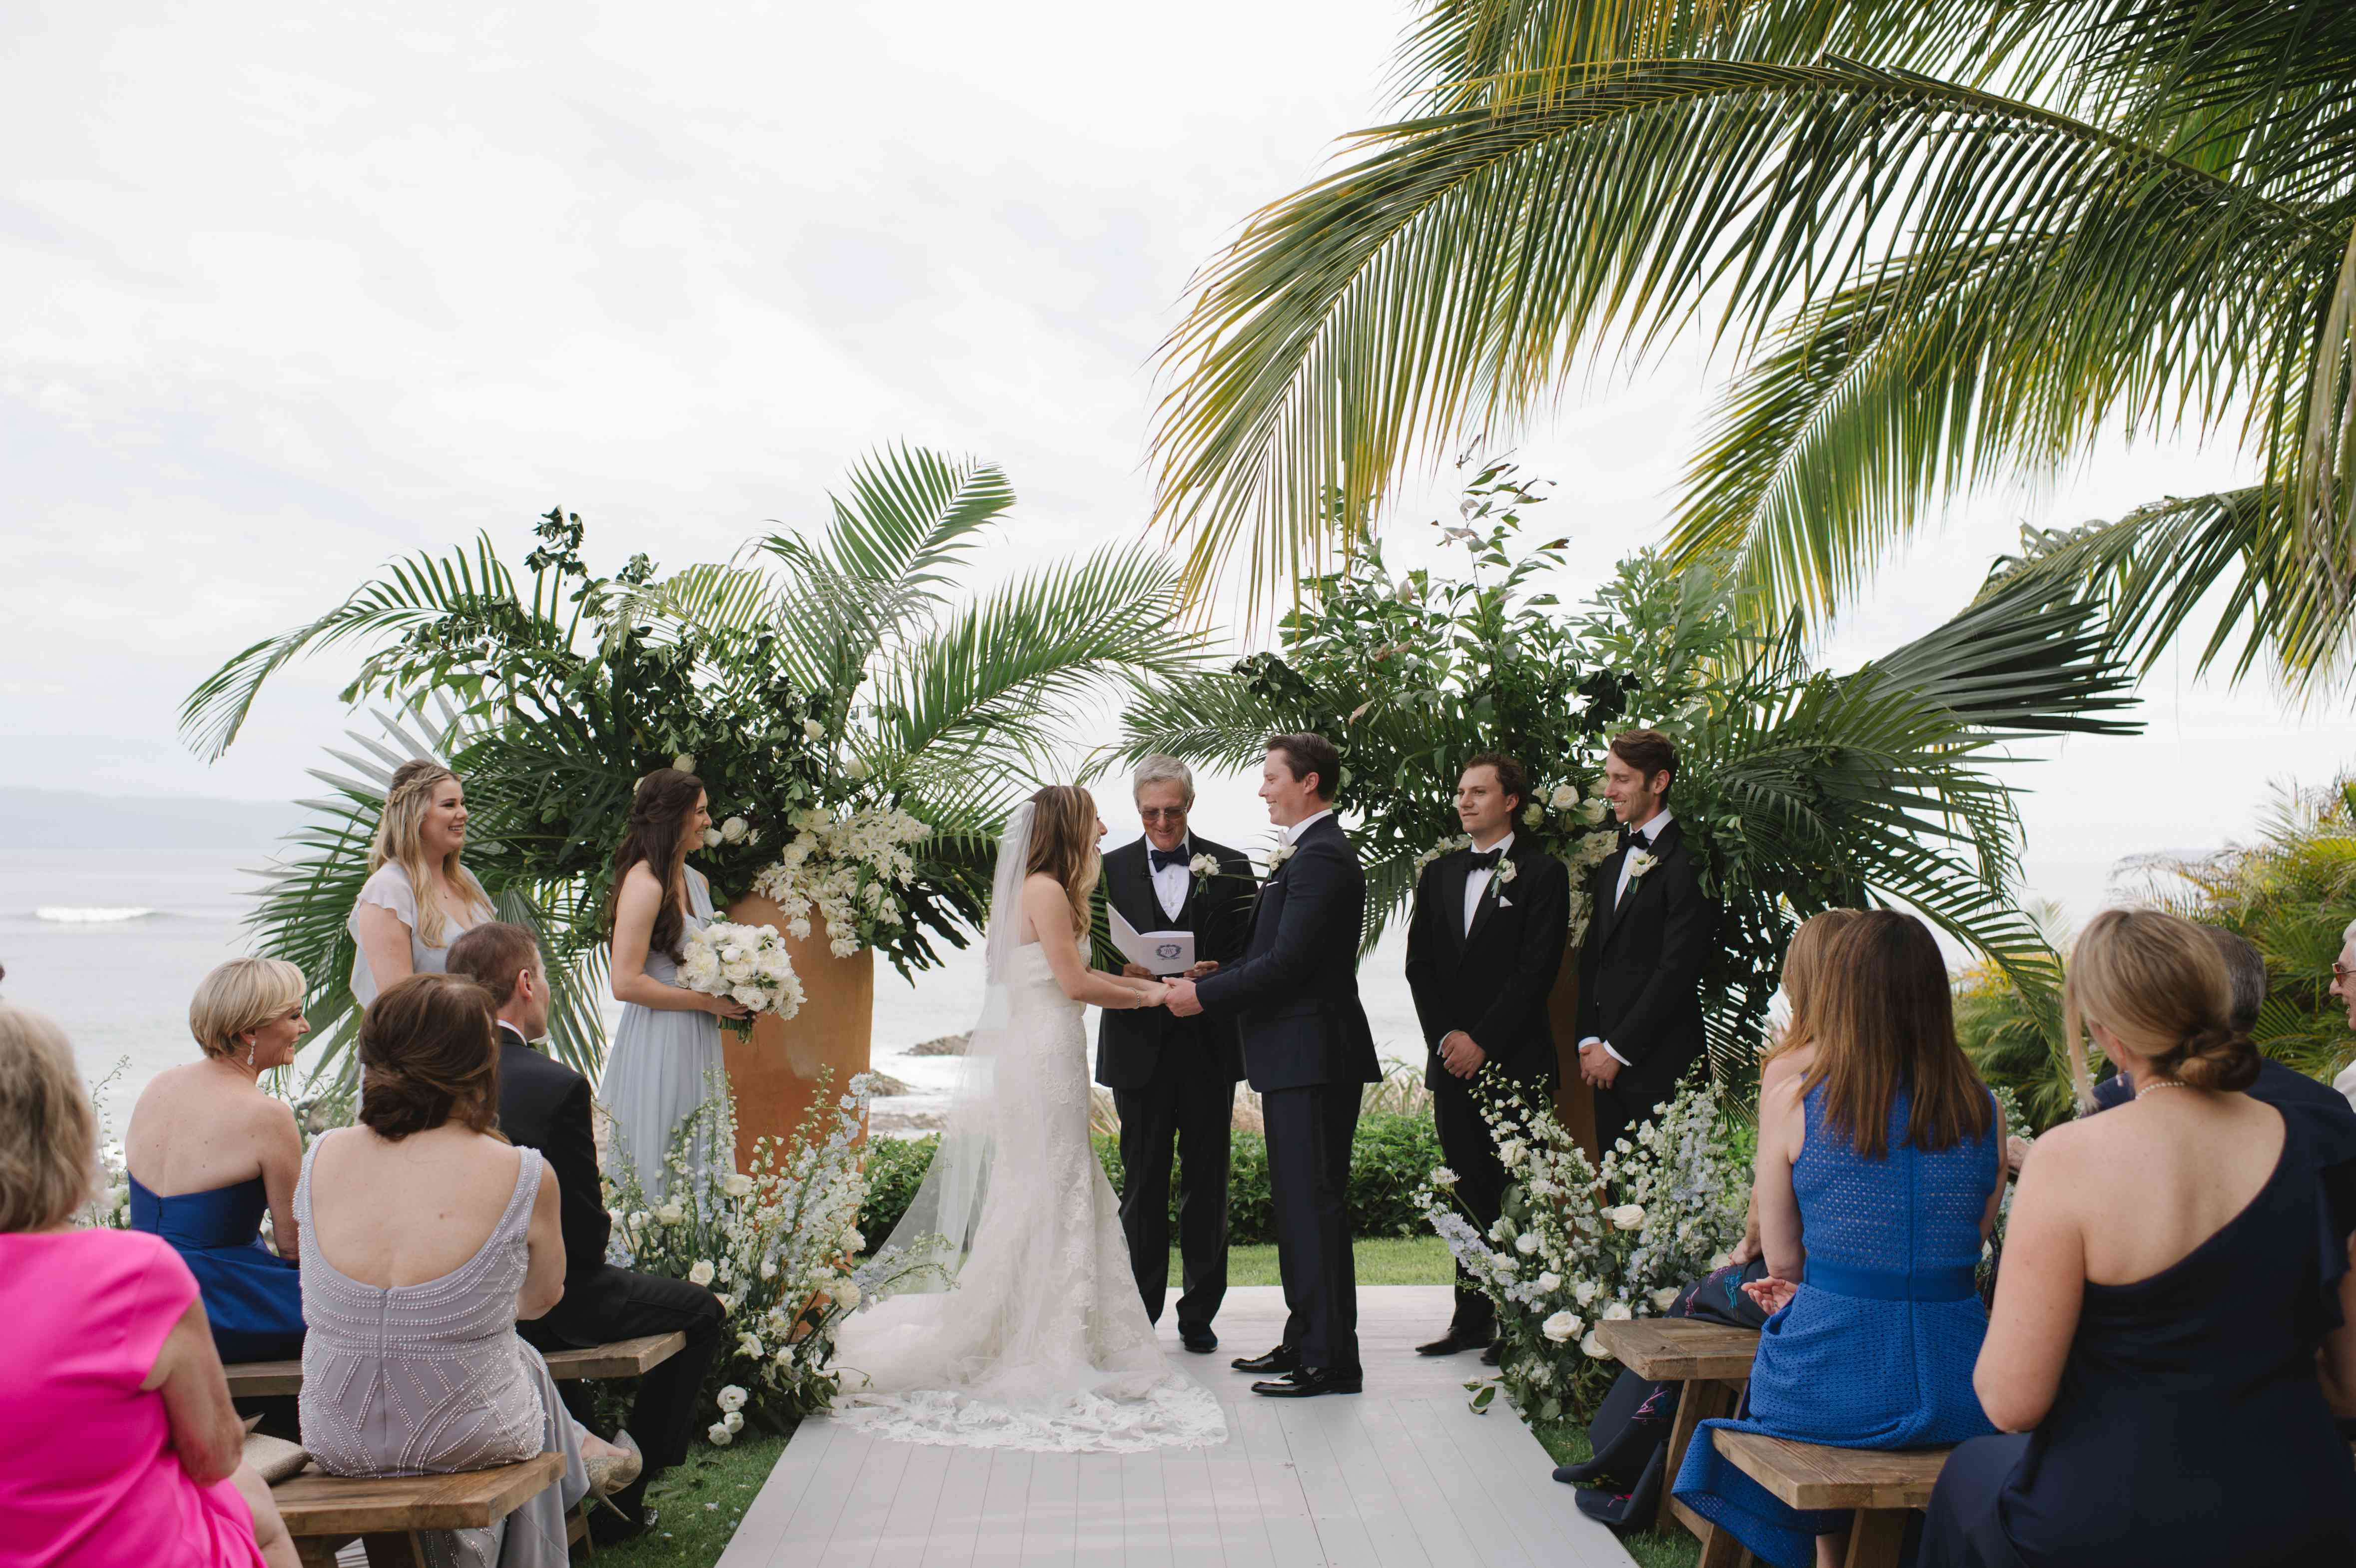 The couple exchange vows